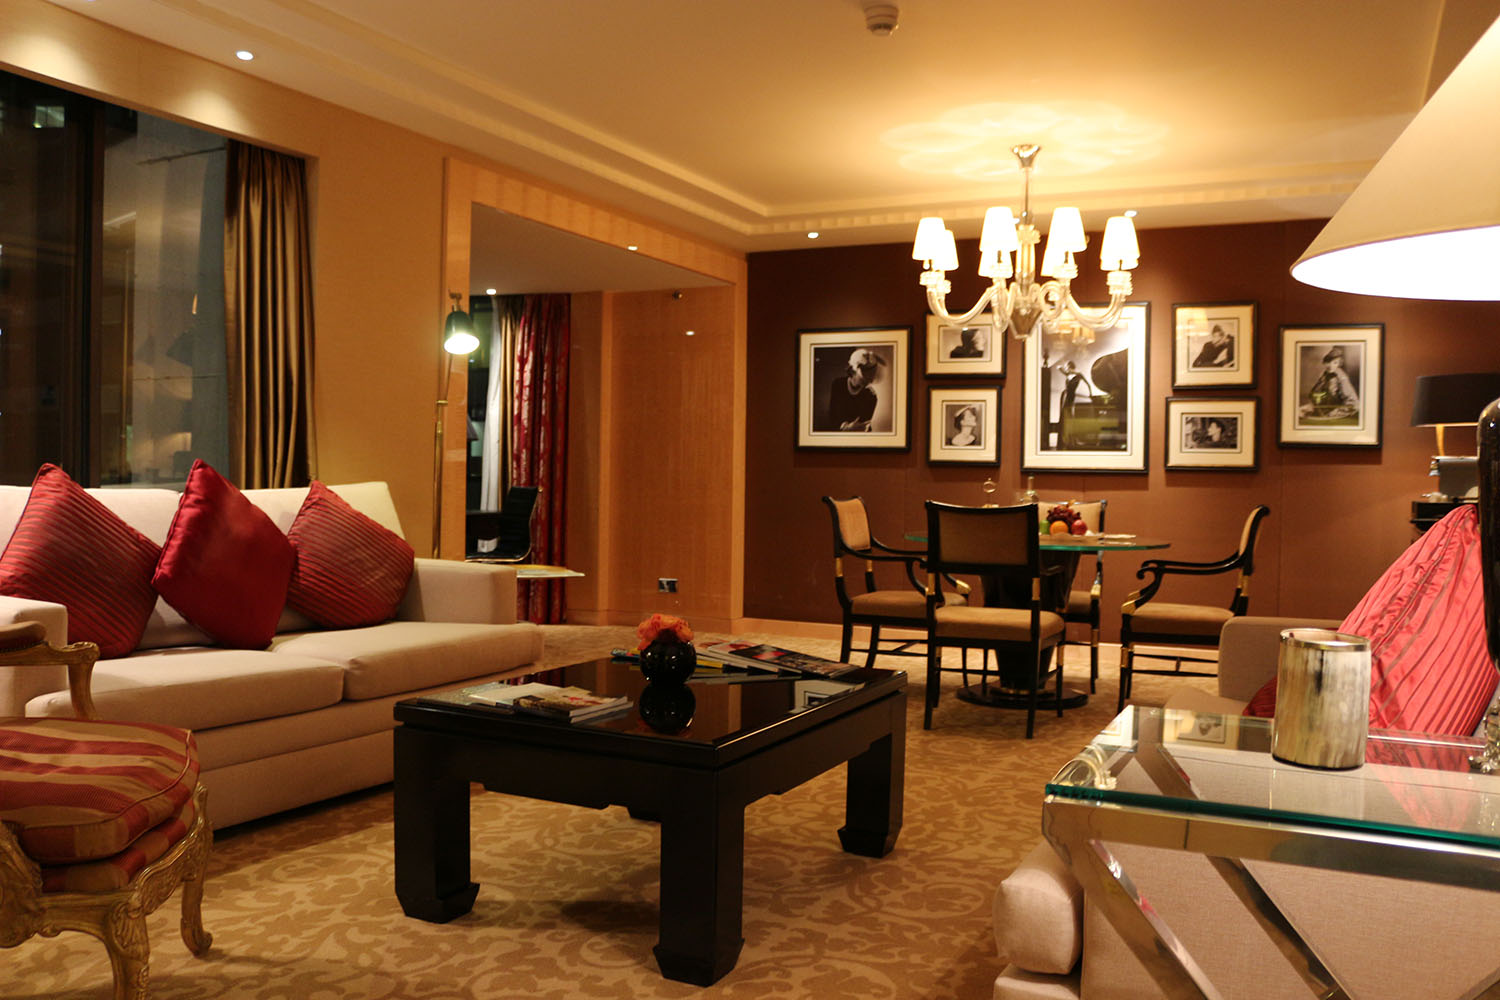 Four Seasons London Hotel Review